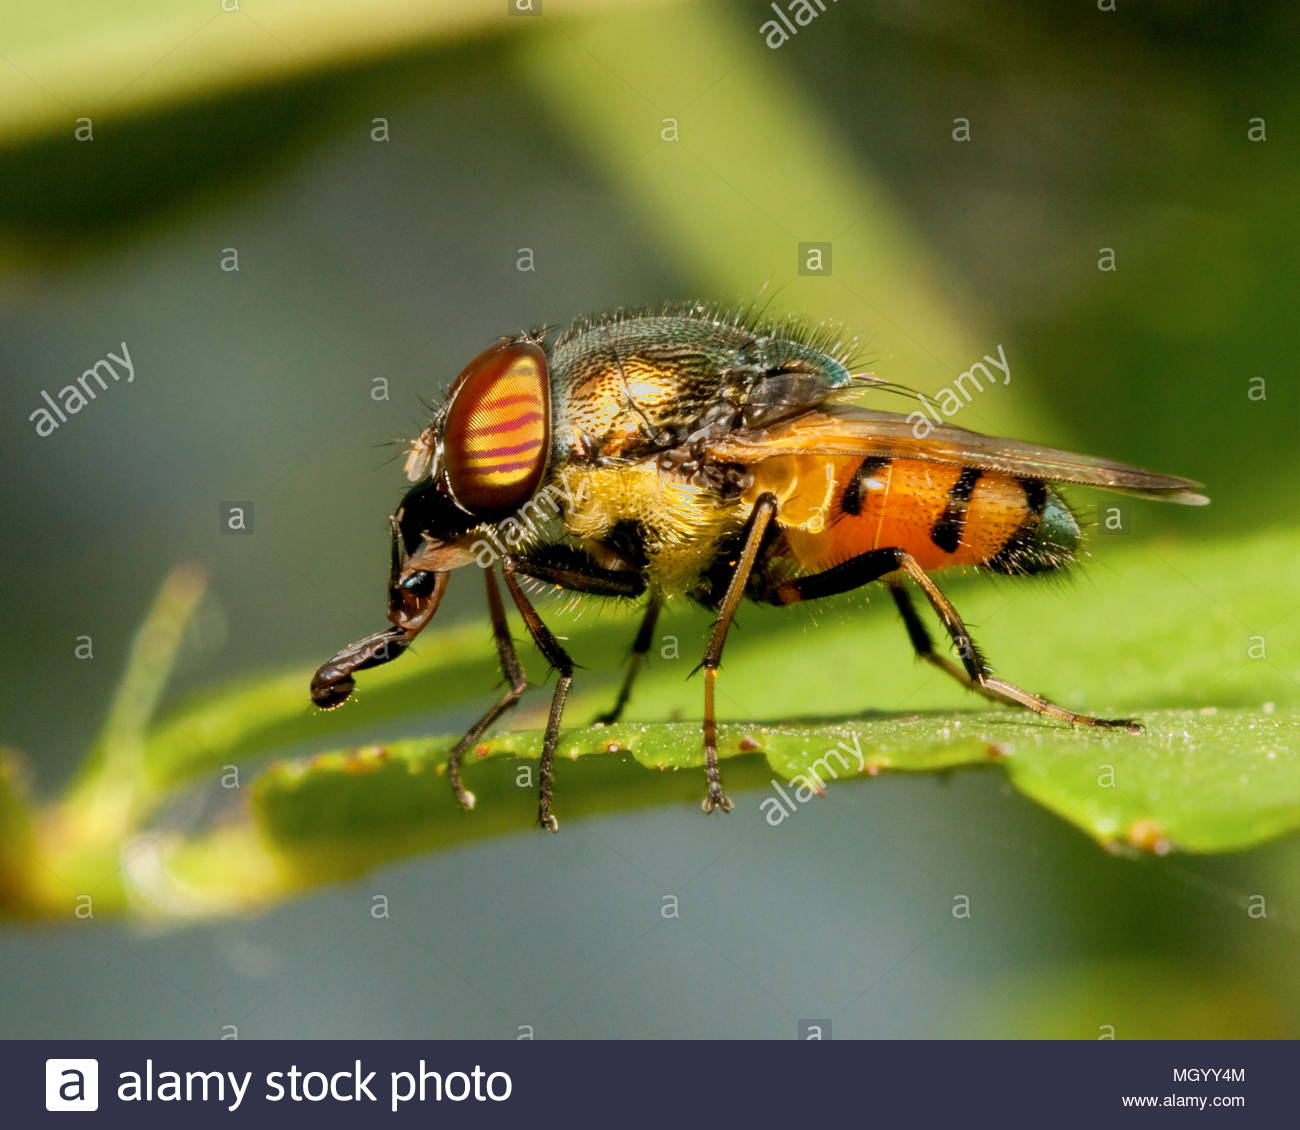 Close view of a fly taking rest on a leaf. - Stock Image